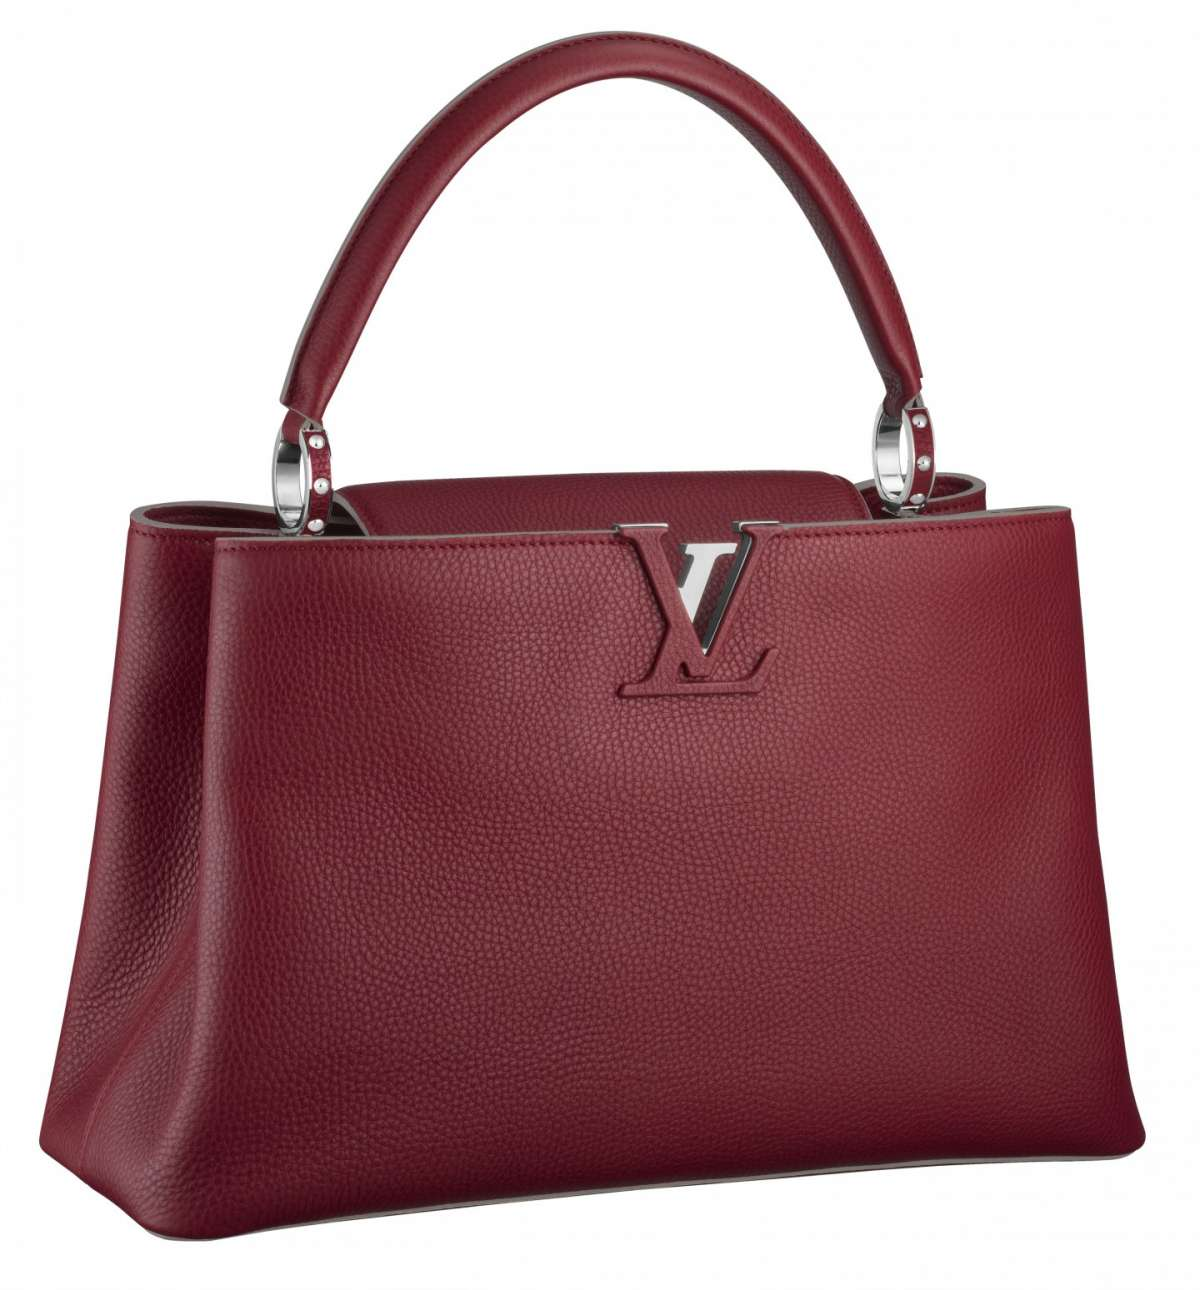 Handbag bordeaux